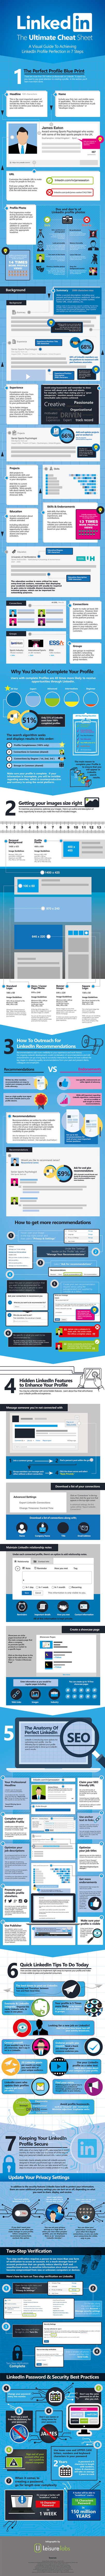 the-ultimate-linkedin-cheat-sheet-infografia-blog-hostalia-hosting